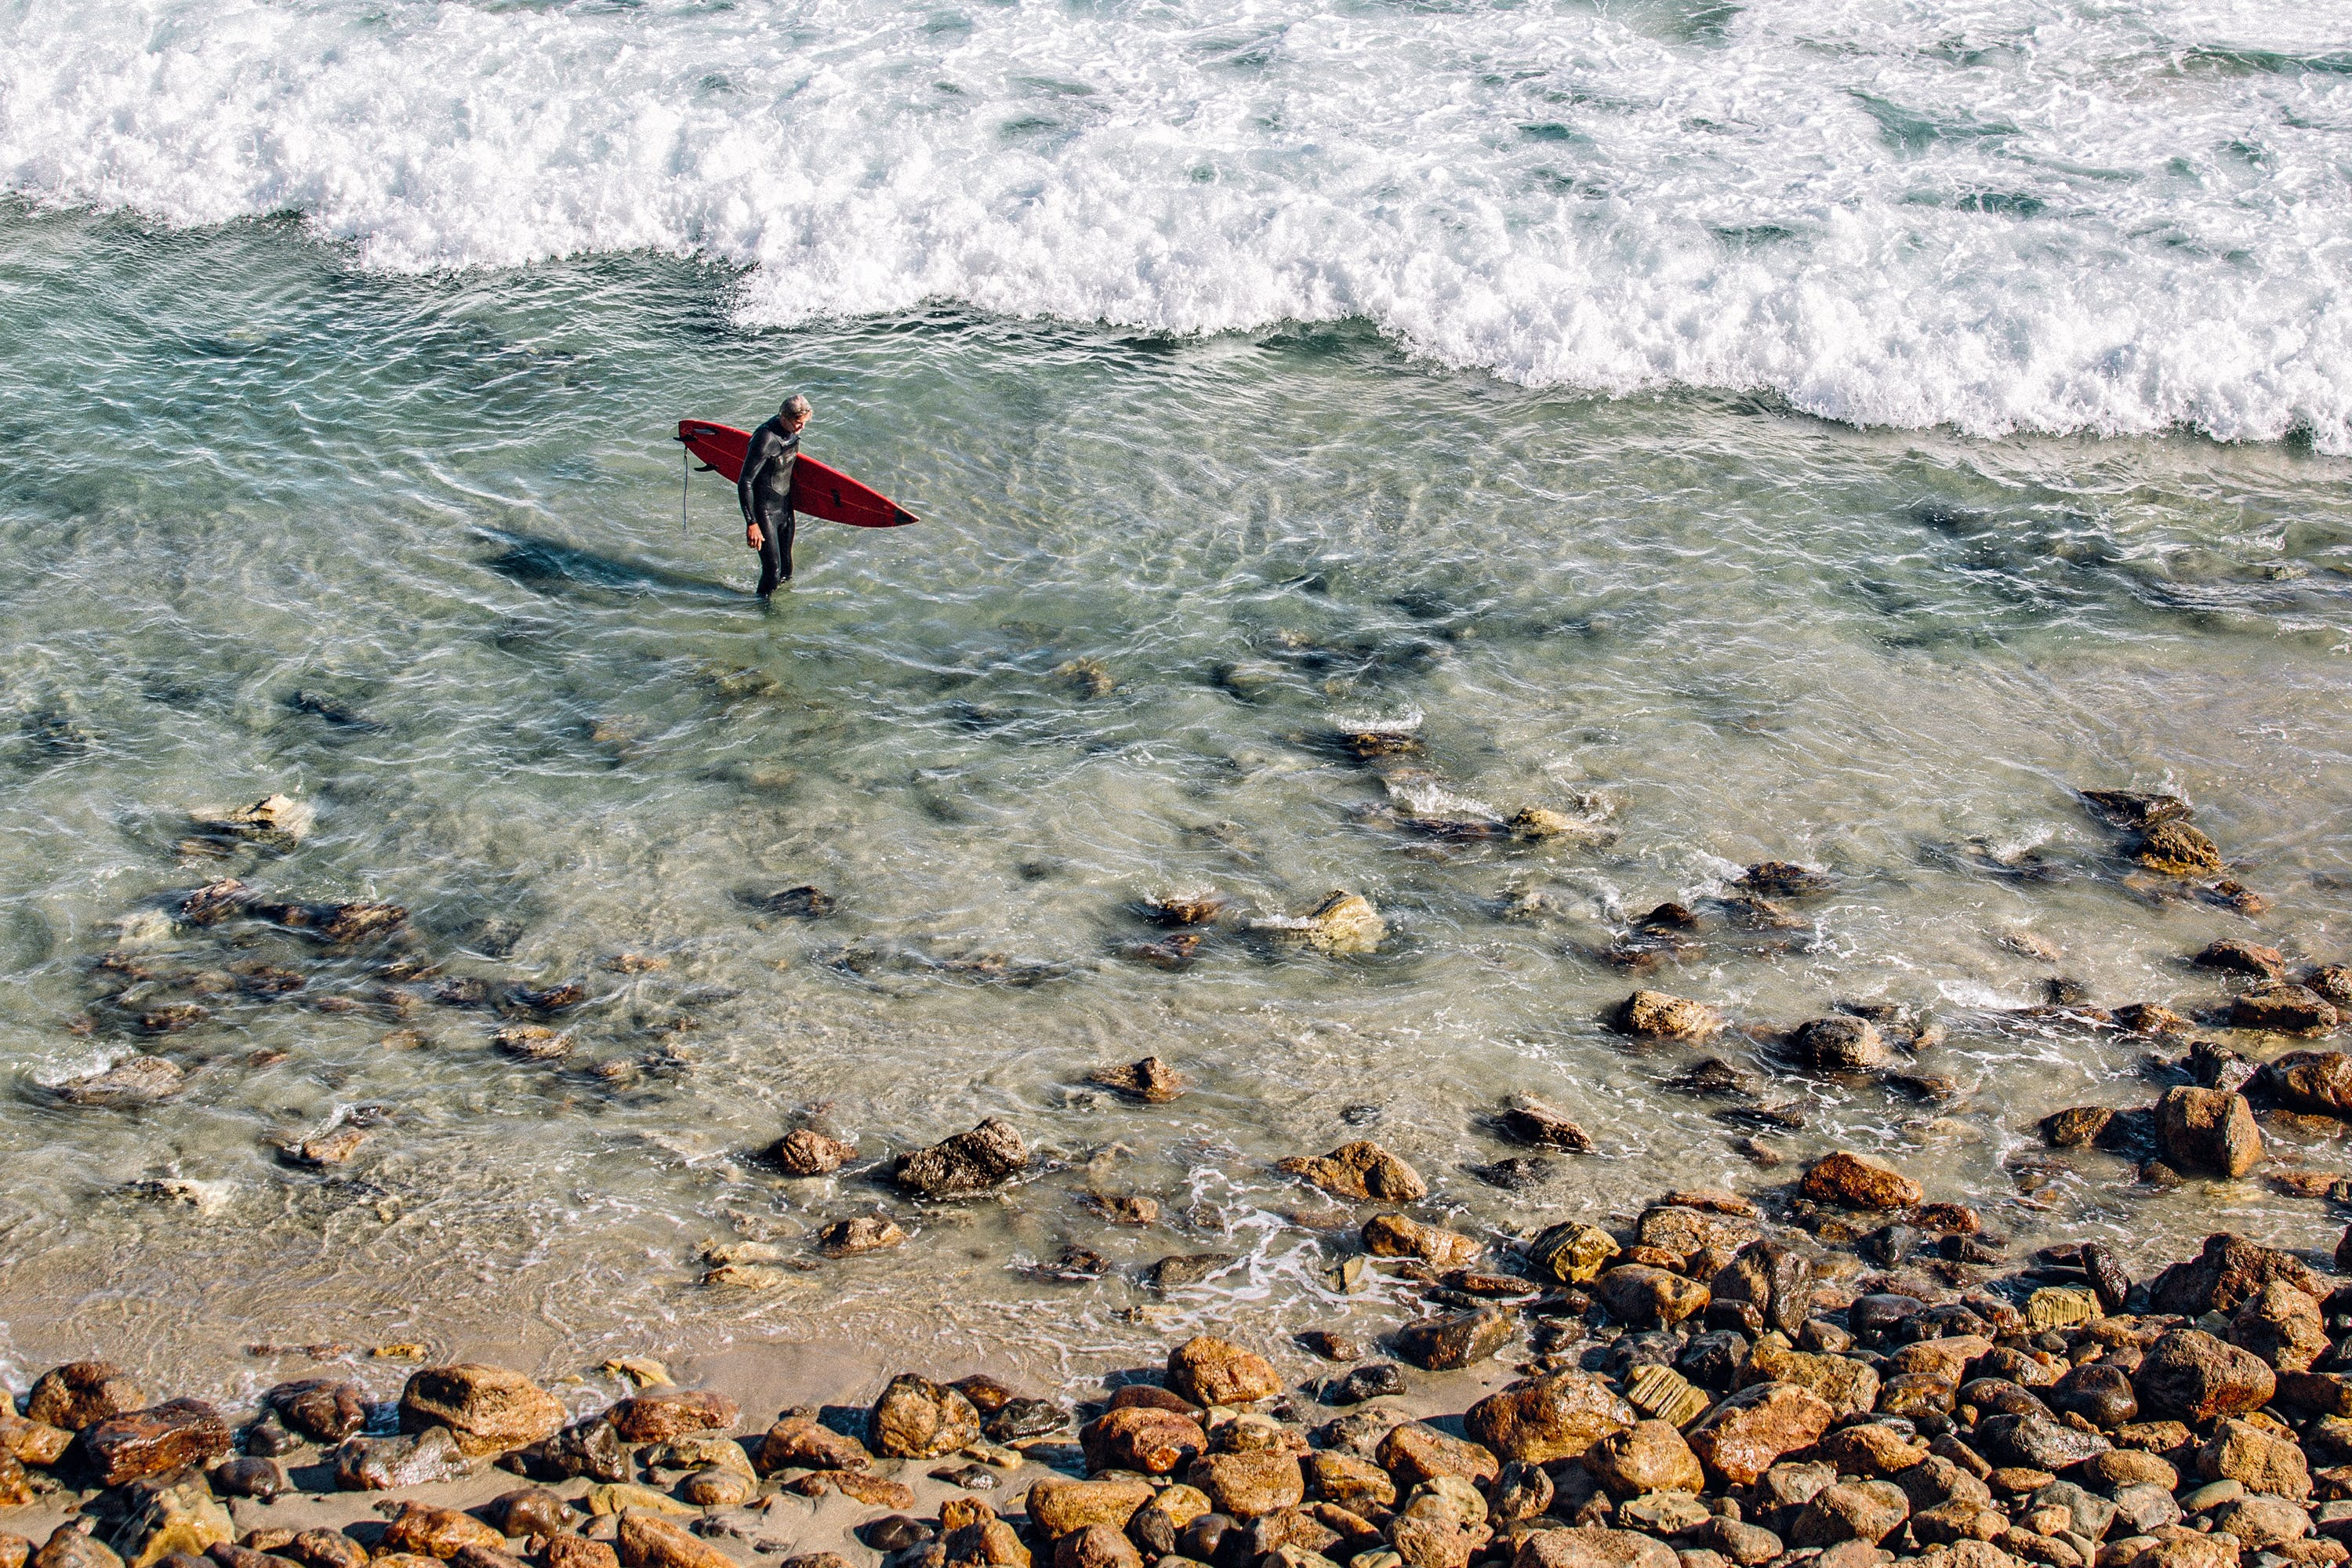 Person Holding Red Surfing Board in Clear Water Near Brown Stone during Daytime